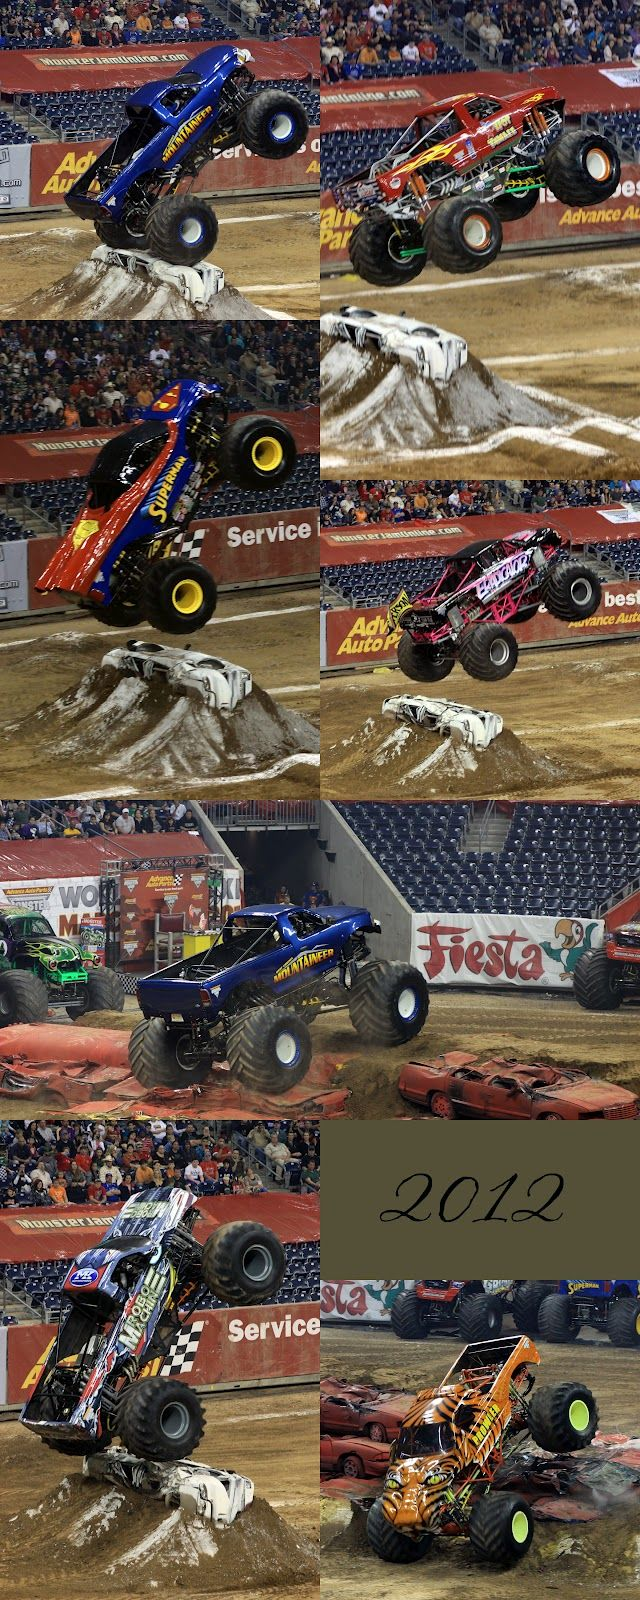 superman and more monster trucks!